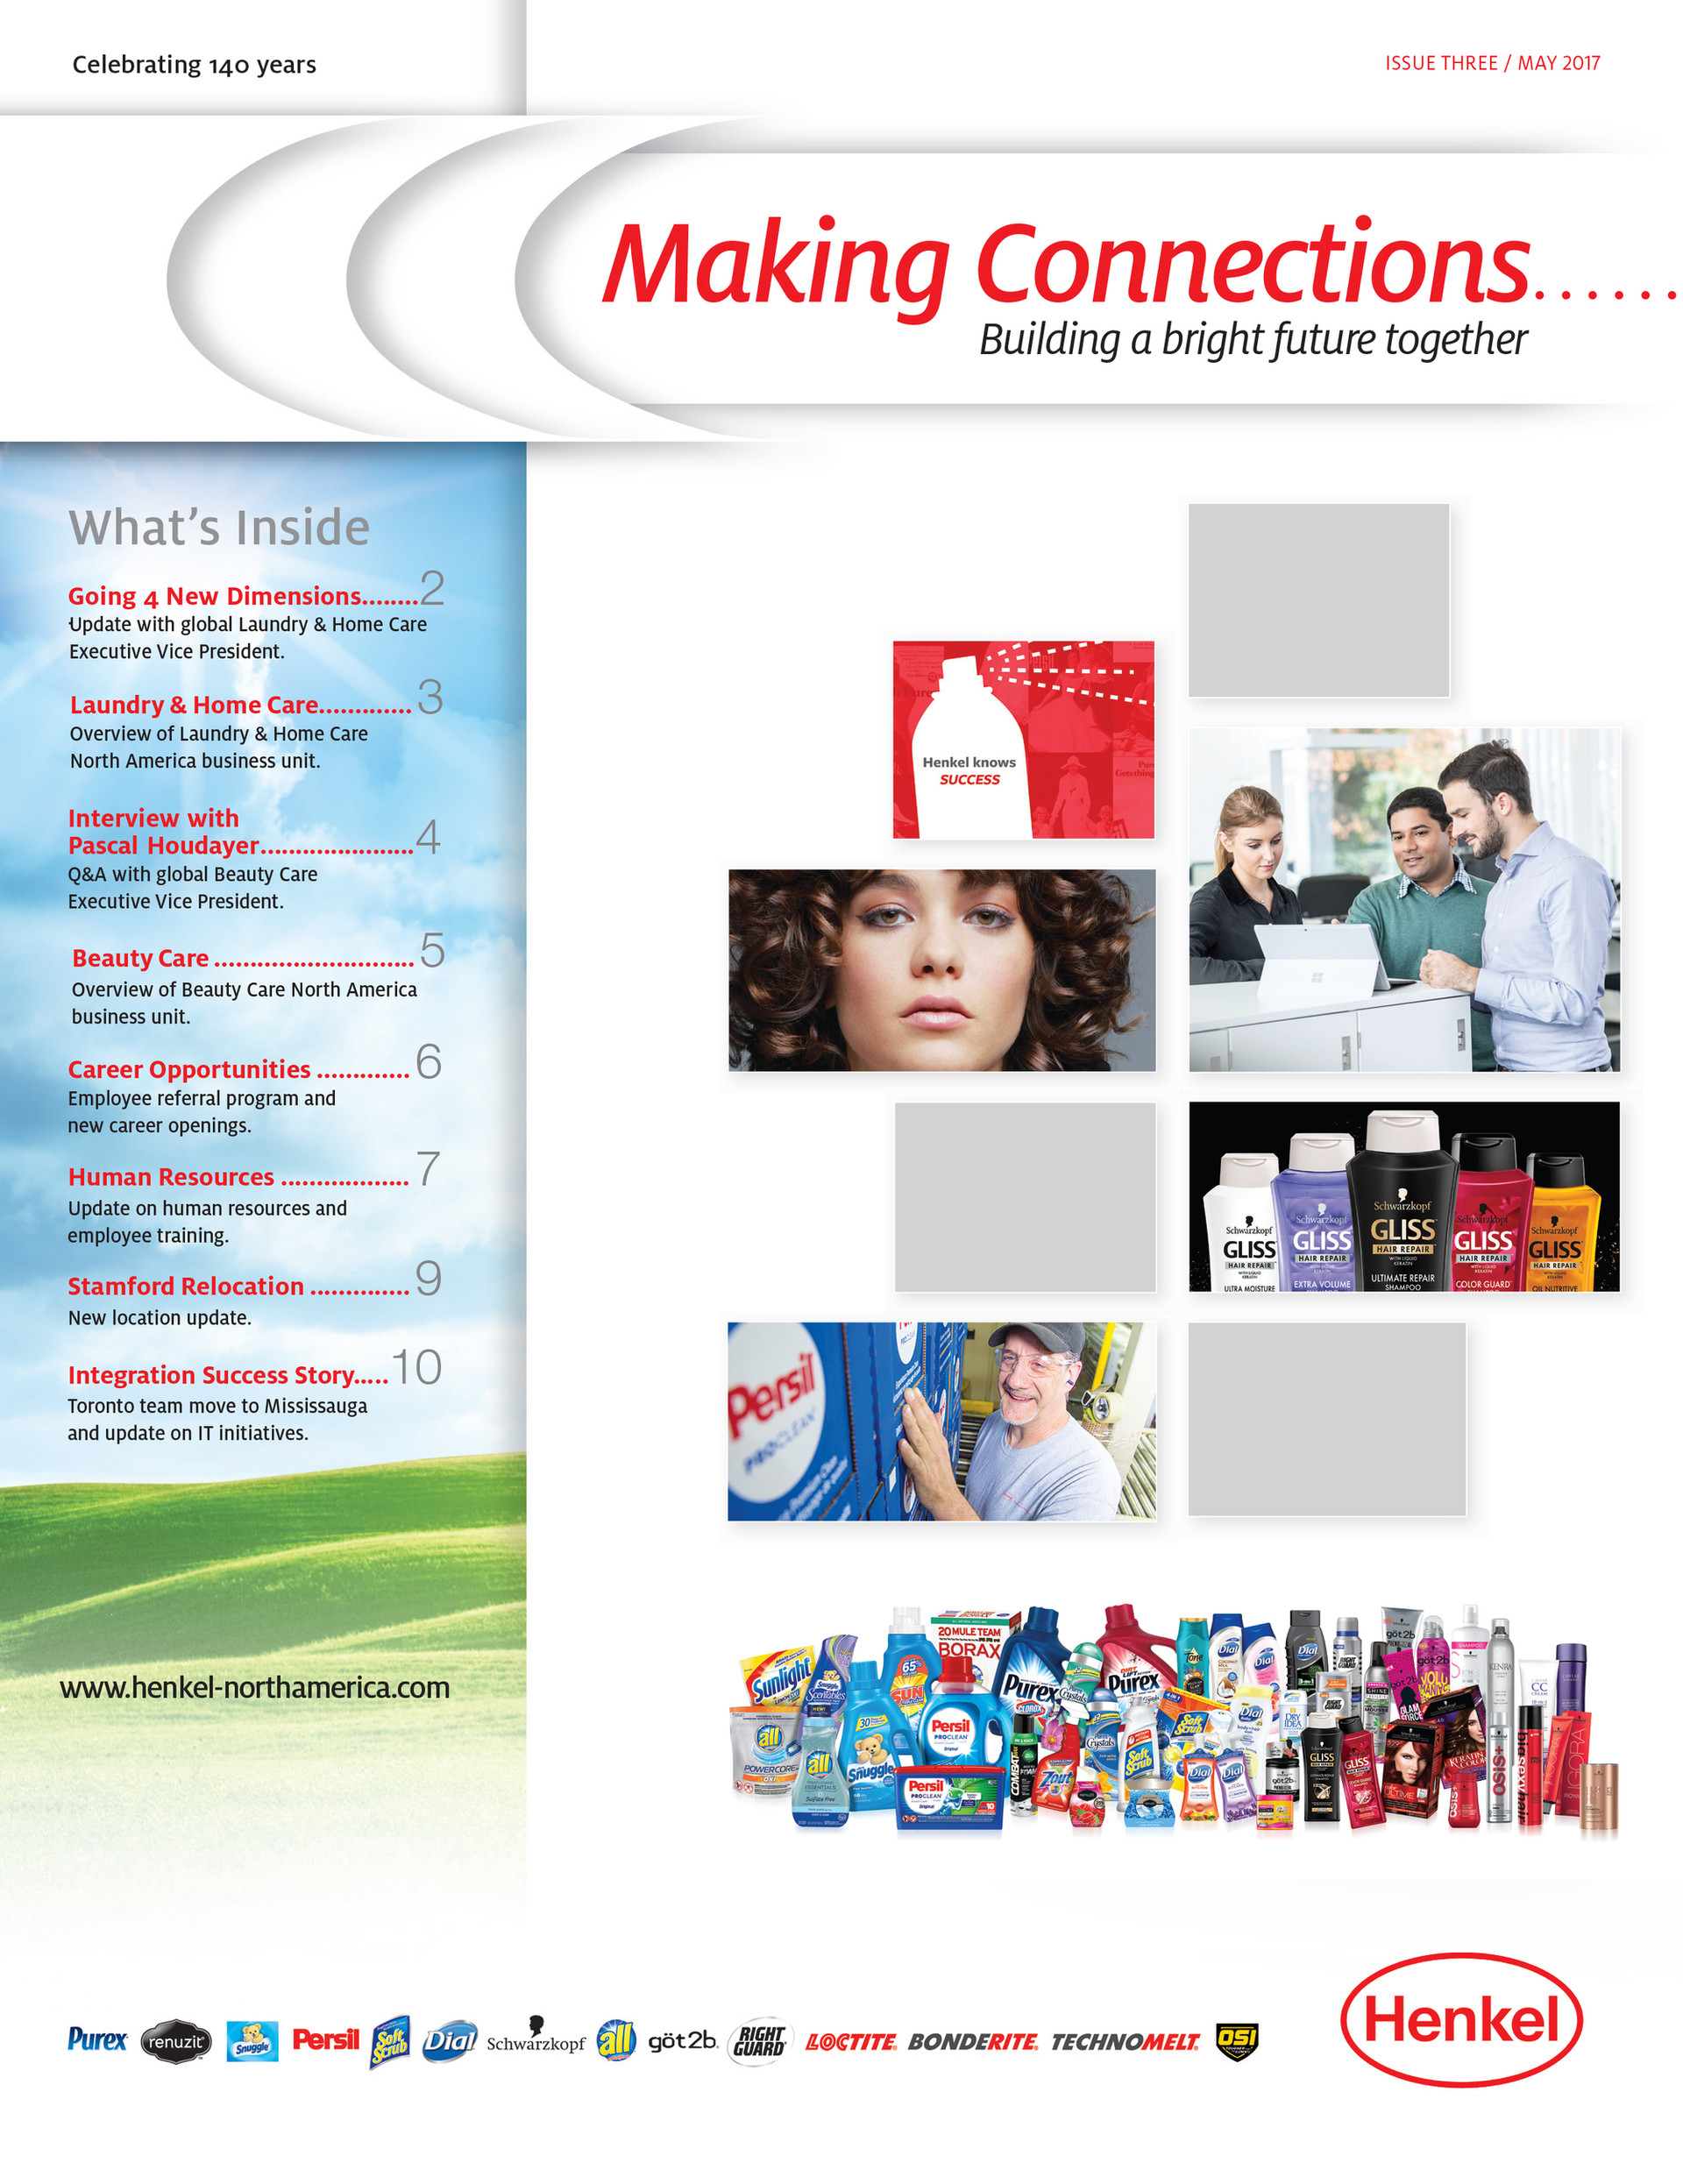 Henkel Making Connections Issue 3-1.jpg